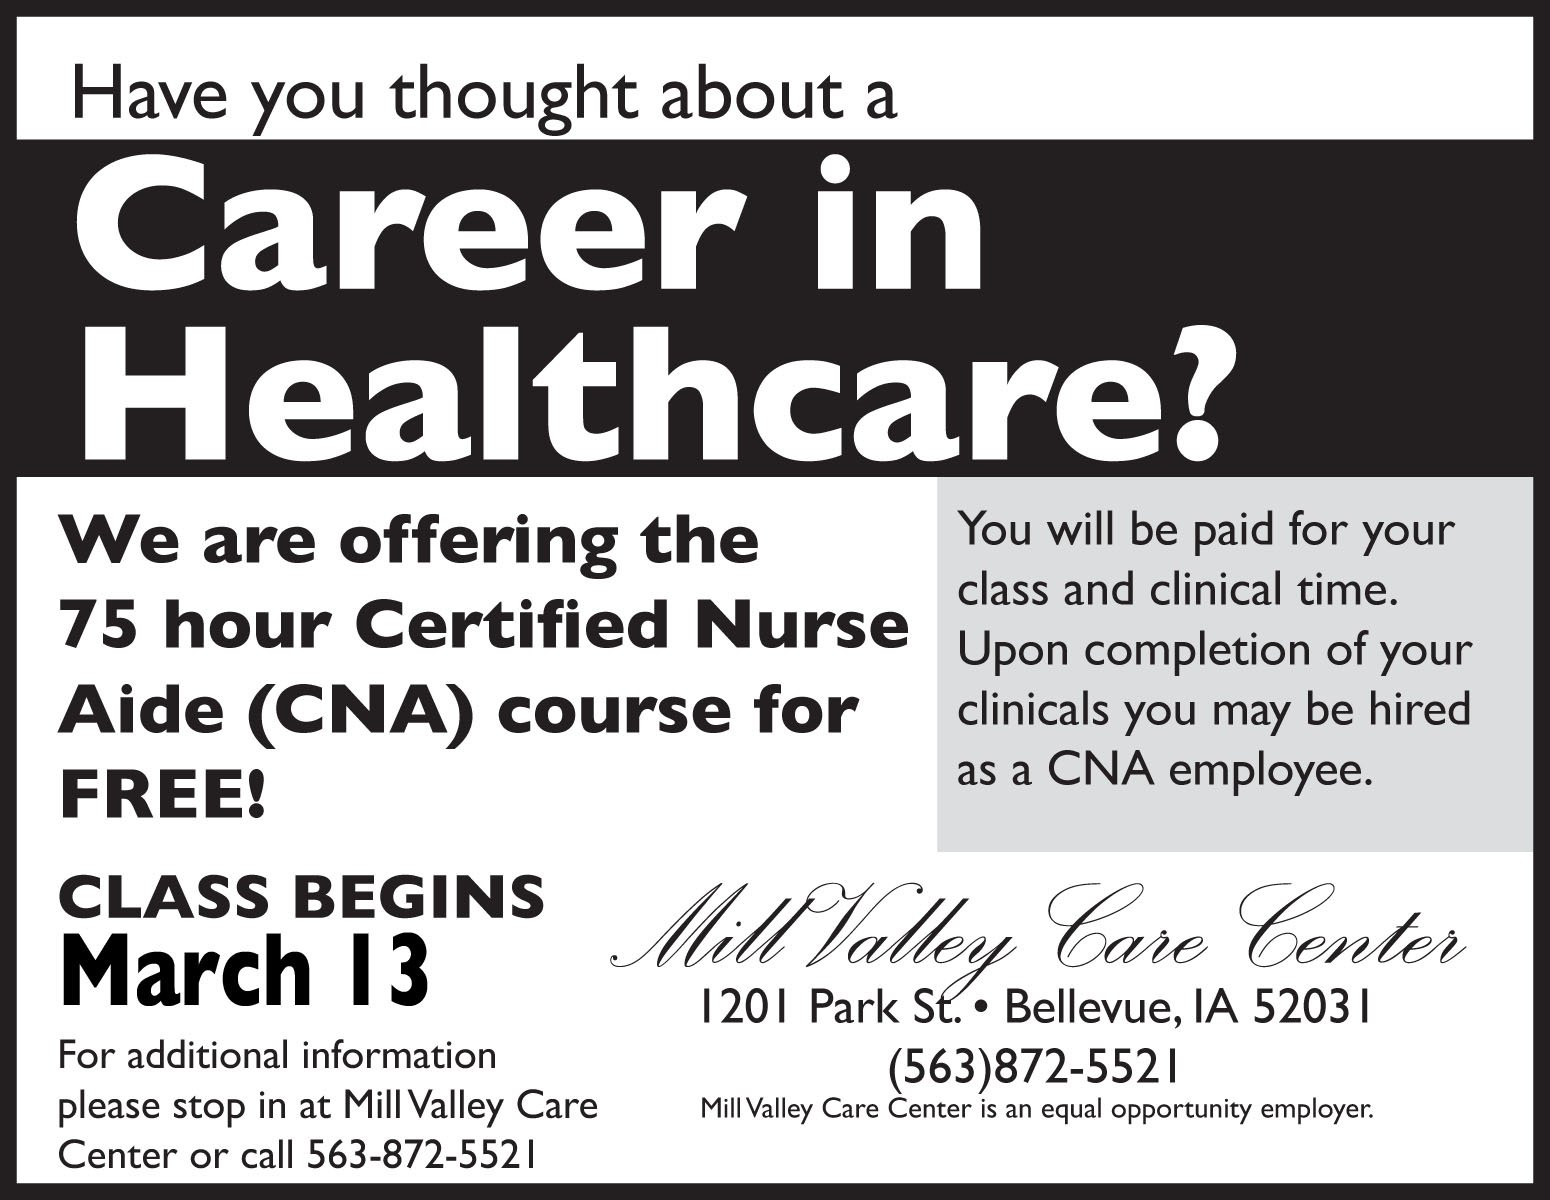 Have you thought about a Career in Healthcare?